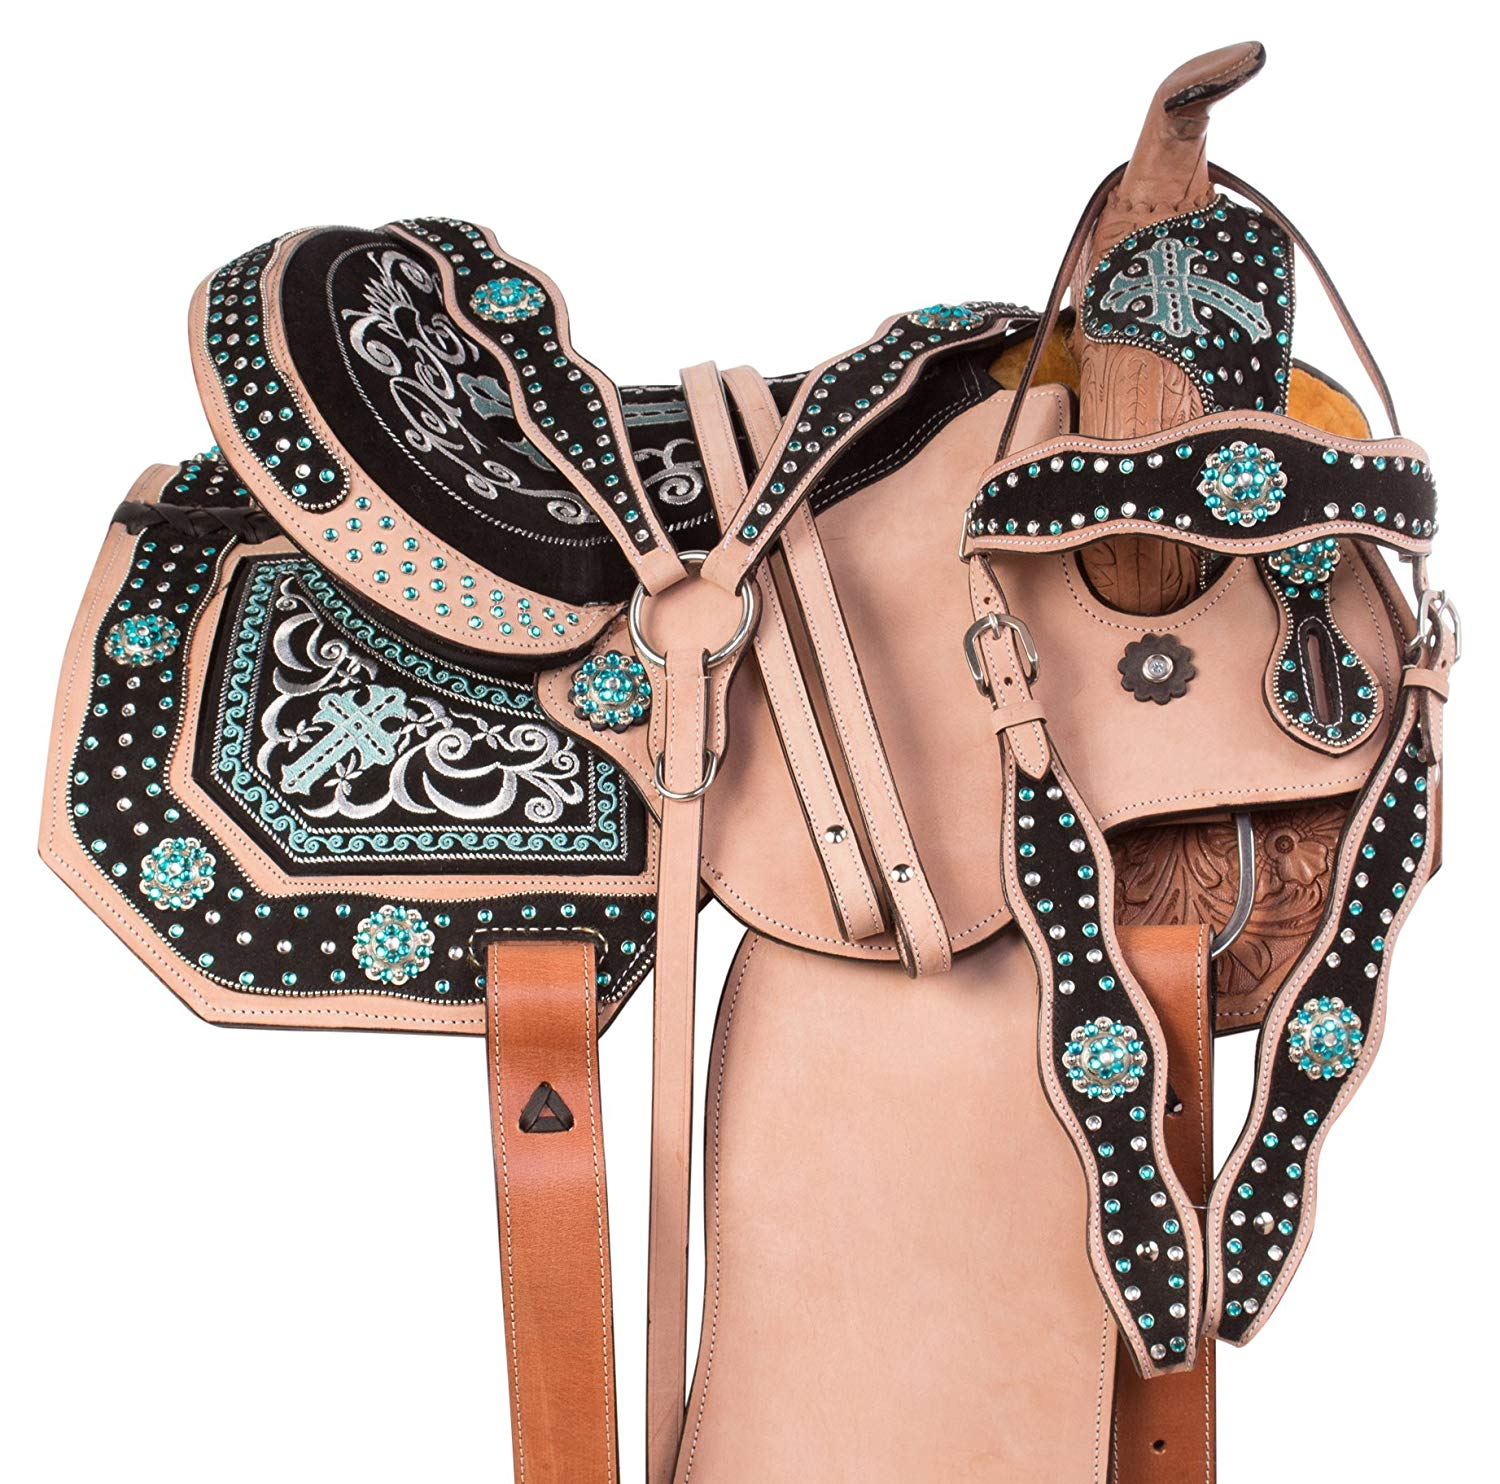 12 13 14 15 16 17 Turquoise Cross Crystal Bling Barrel Racing Western Rough Out Leather Horse Show Saddle 3 Piece Tack Set Horse Tack Saddles